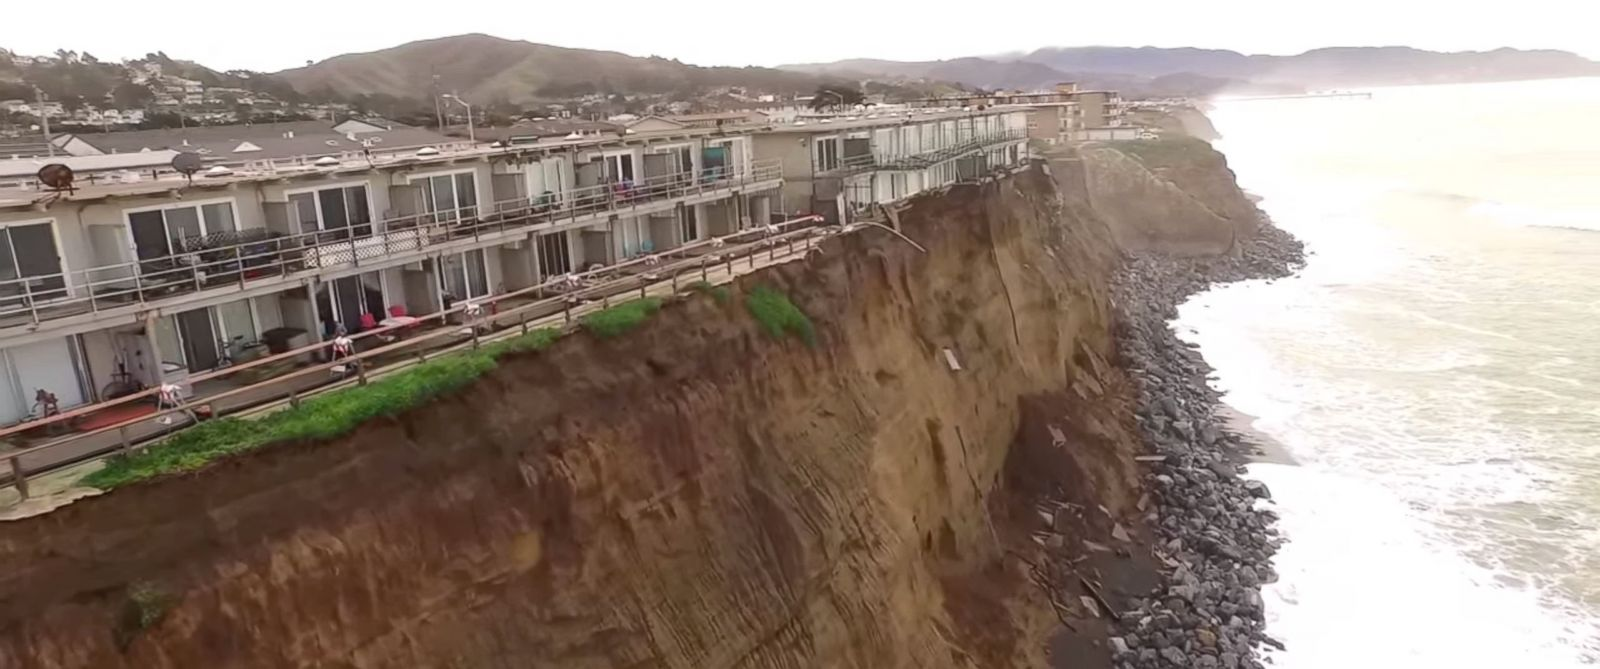 "PHOTO: An image made from a video posted to YouTube on Jan. 25, 2016 with the title ""Pacifica Coastal Erosion Drone Video"" shows the extent of the damage done from El Nino storms. Residents have been ordered out of these apartments."